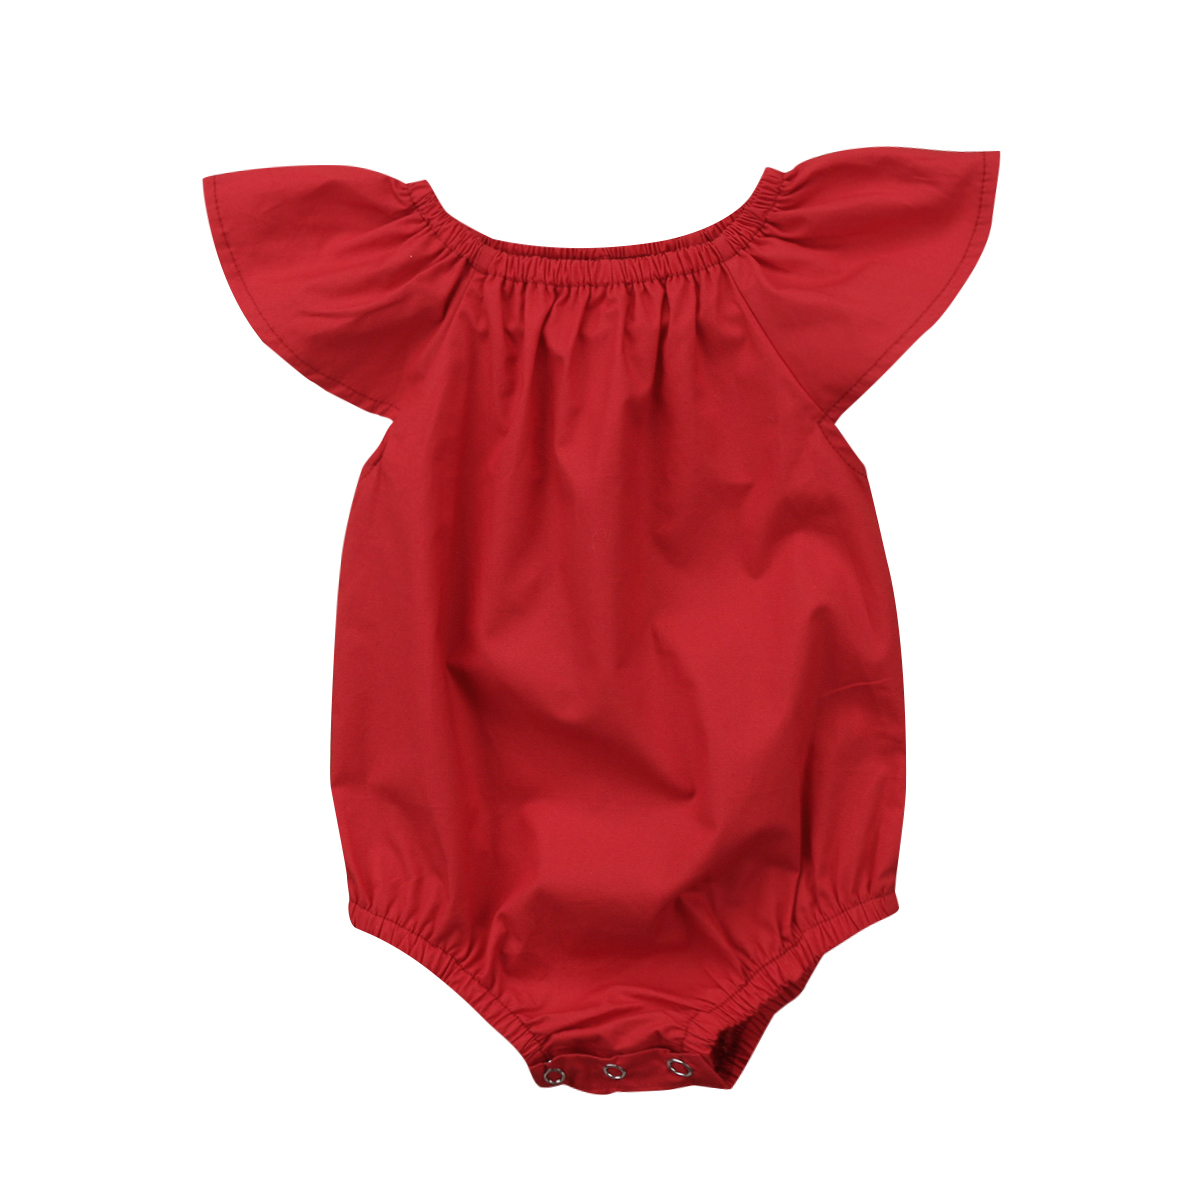 Newborn Baby Girls Infant Top   Romper   Jumpsuit Baby   Rompers   Clothes Outfits